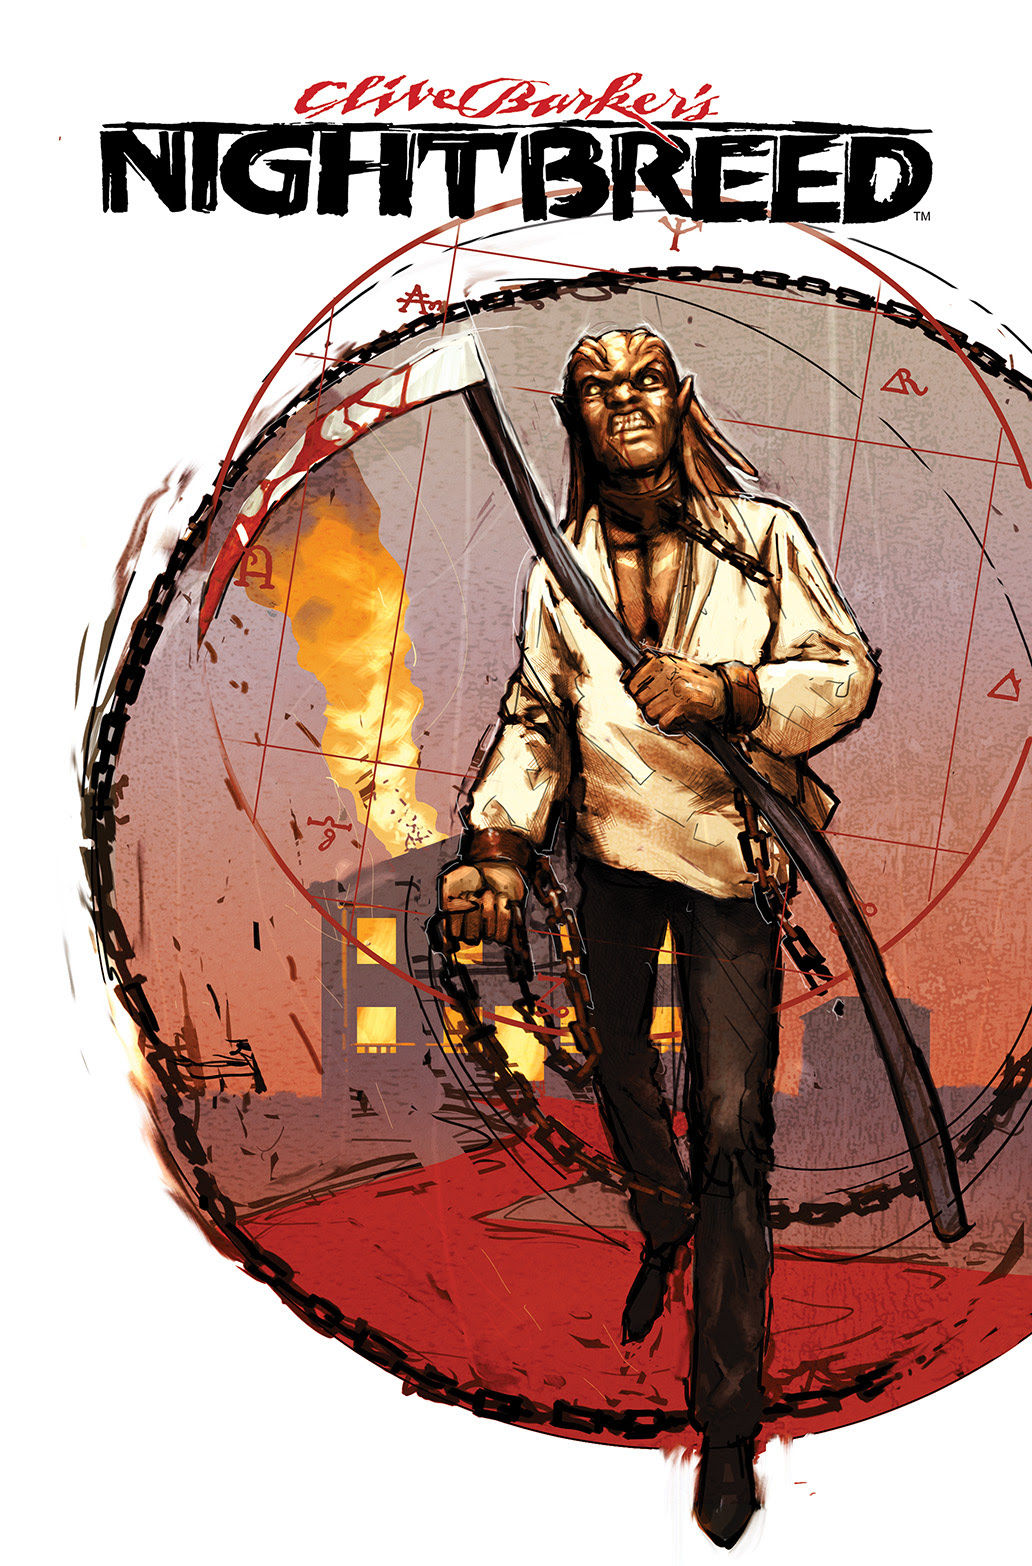 CLIVE BARKER'S NIGHTBREED #2 Cover A by Riley Rossmo